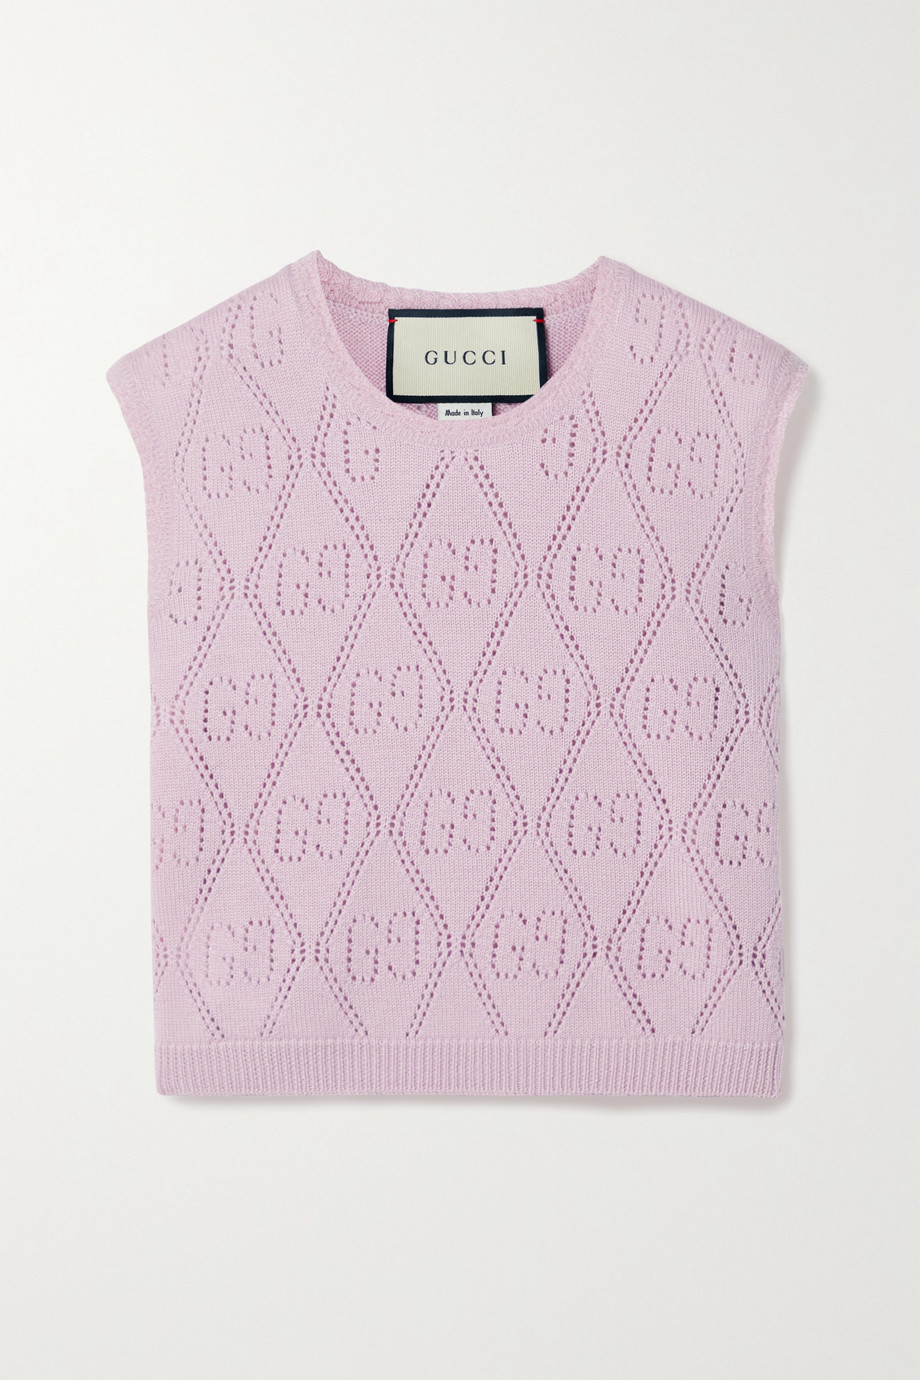 Gucci Pointelle-knit wool vest